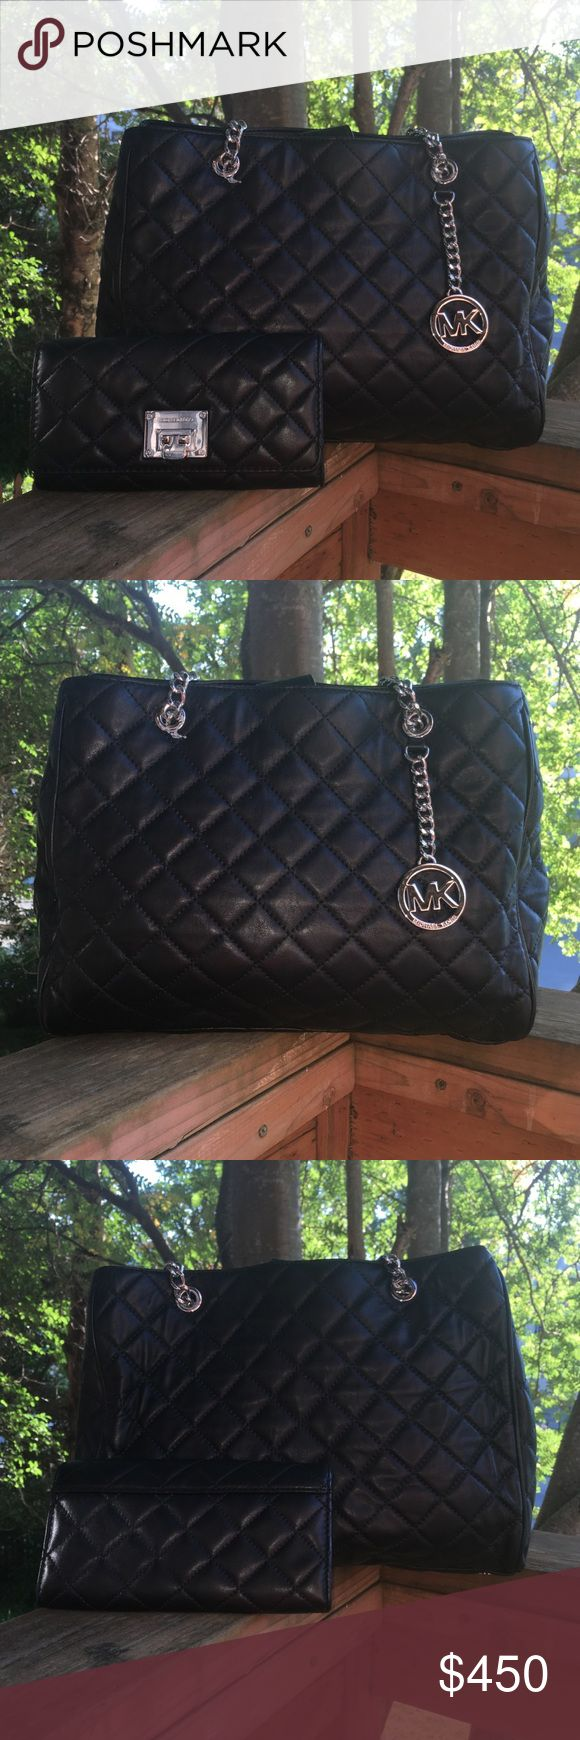 "MK Susannah Quilted Bag & Astrid Quilted Wallet MK LG Susannah Lamb Skin Quilted Bag is lined, 1 zip, multiple slip pockets, middle zip divider, protective feet, magnetic closure w/ dual chain & leather drop approx 9"" Astrid Quilted Lamb Skin Wallet has 16 slots for cards, middle zip divider full size slip pockets flap top closure with latch lock both silver hardware bag measures approx 13.5 X 9.5 X 4.25 Wallet measures approx 8 X 4 X 2 includes dust bag MSRP $690 MICHAEL Michael Kors Bags…"